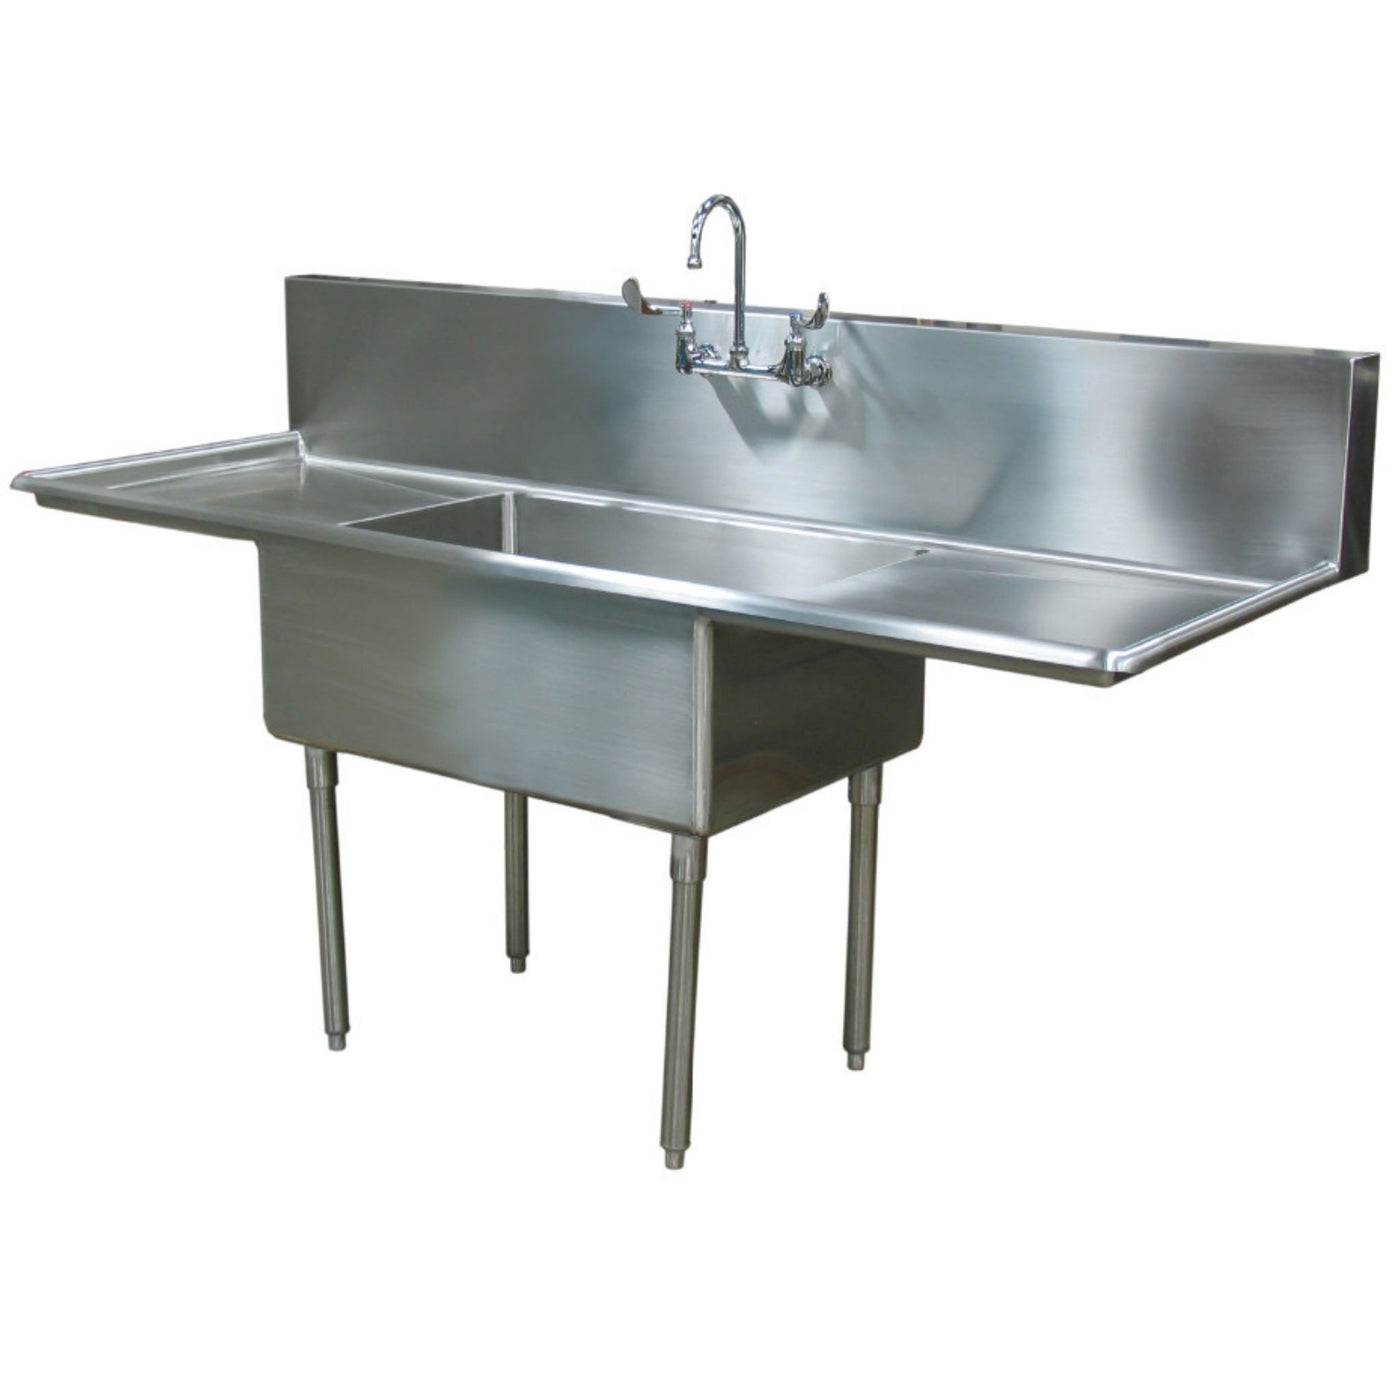 Medium image of scullery sink  dual drain board